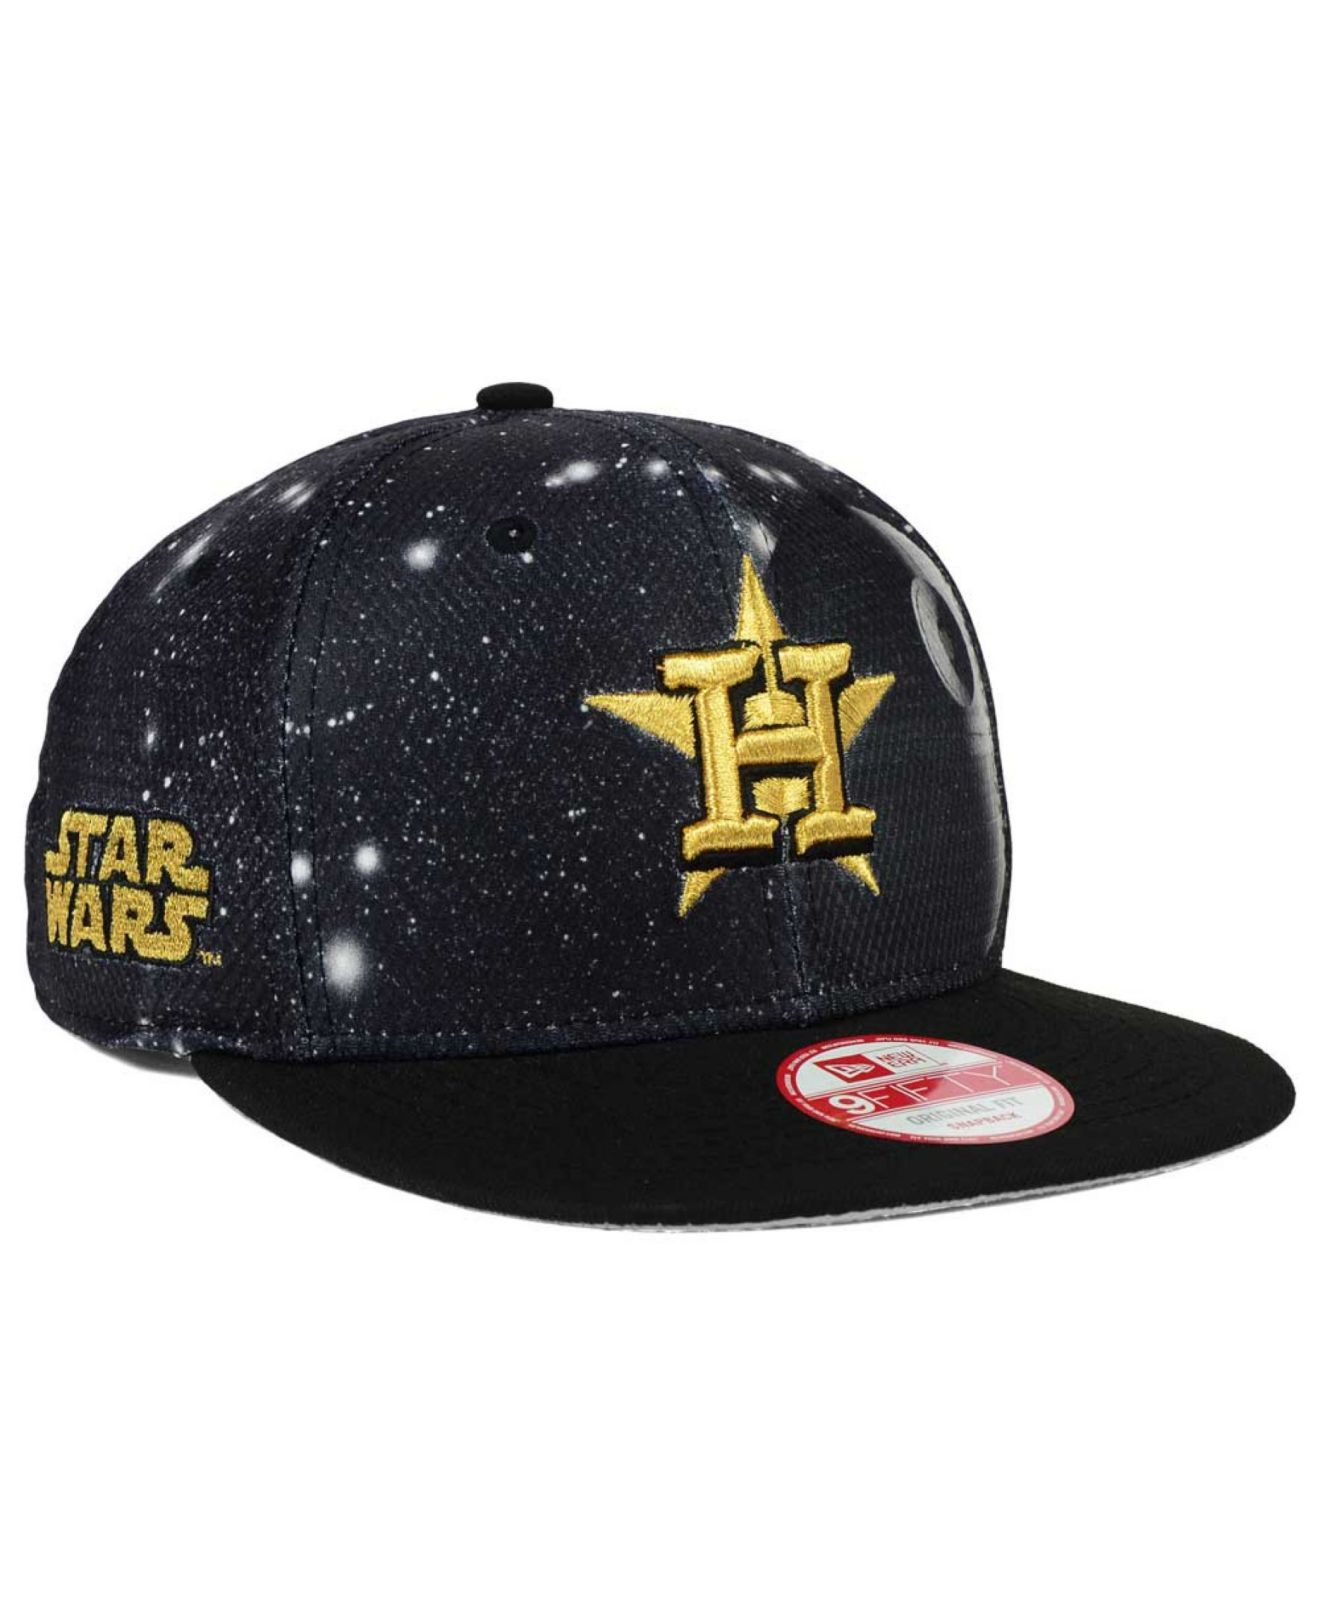 sale retailer 1ac91 7a6e6 ... discount code for lyst ktz houston astros sw x mlb 9fifty snapback cap  in black for